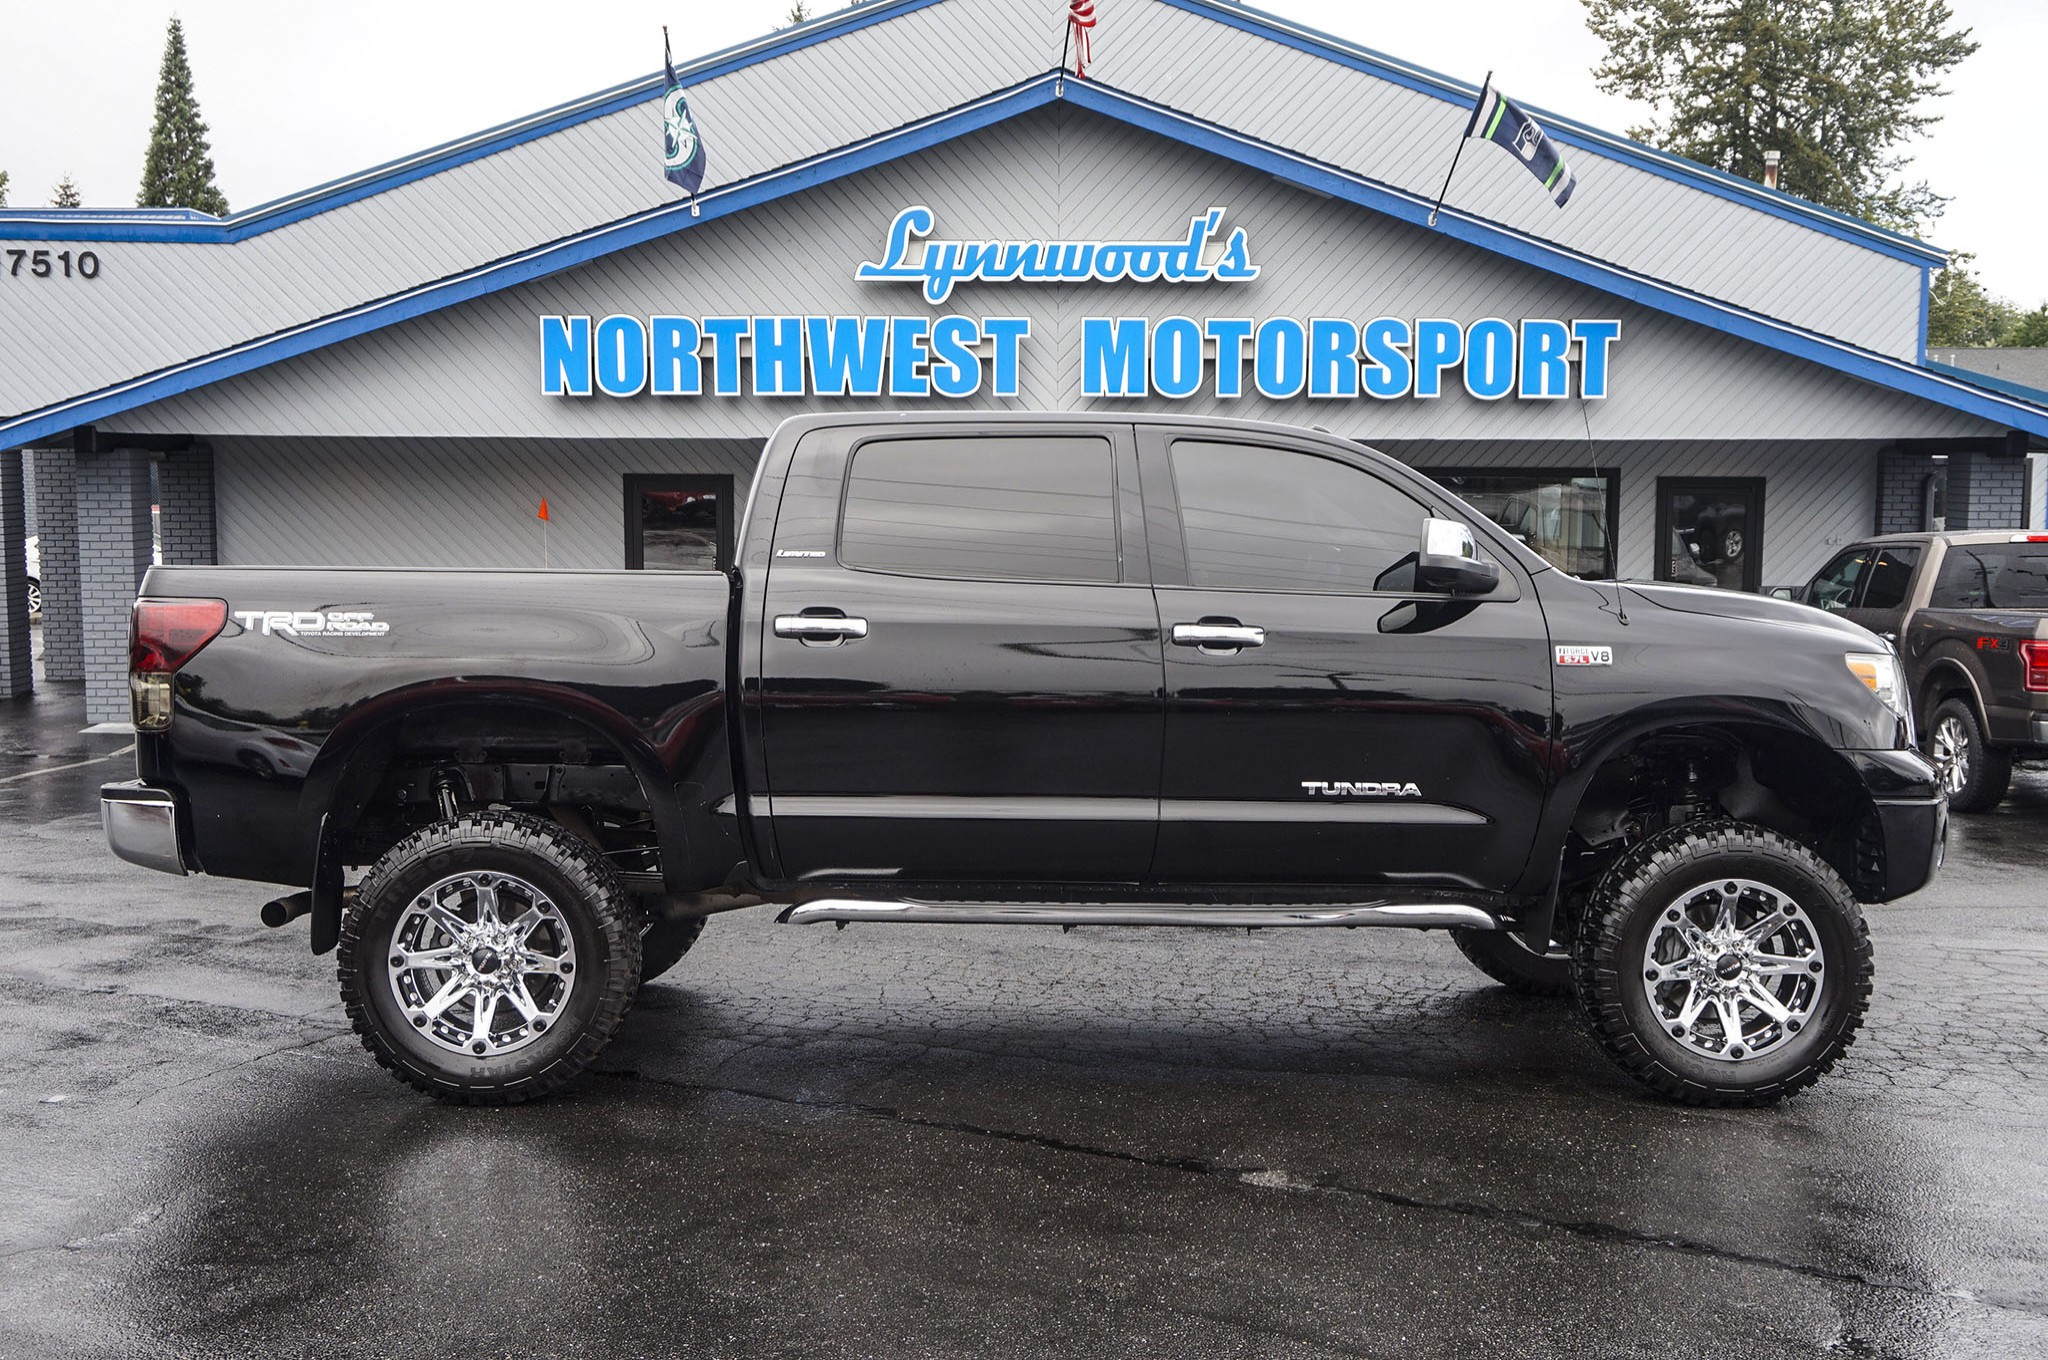 used lifted 2012 toyota tundra limited 4x4 truck for sale 33763. Black Bedroom Furniture Sets. Home Design Ideas